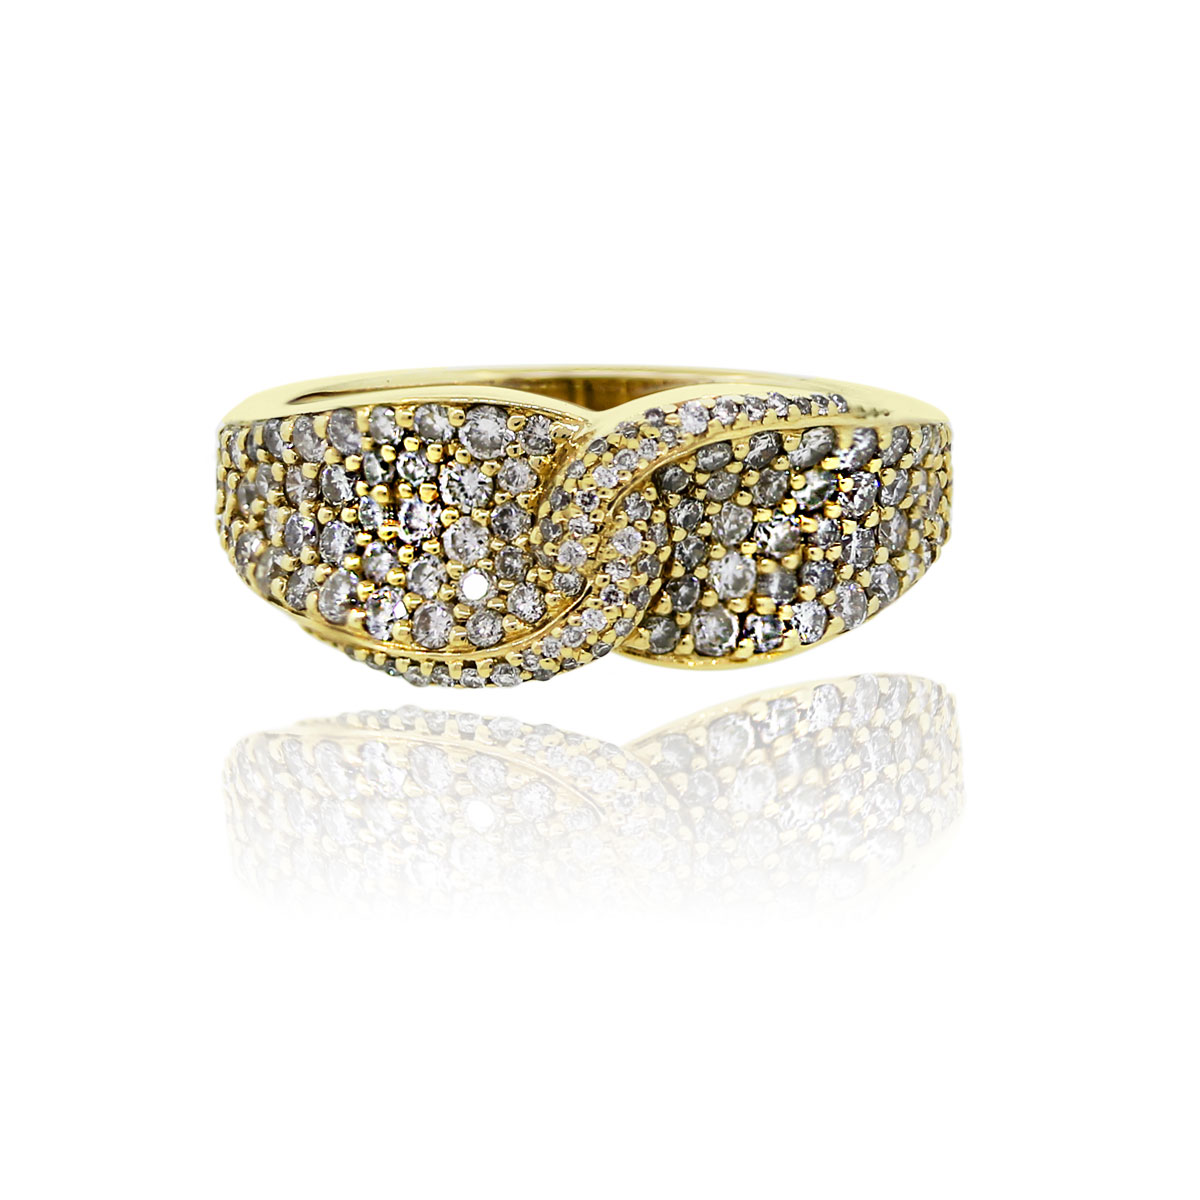 You are viewing this EFFY 14K Yellow Gold Diamond Ring!